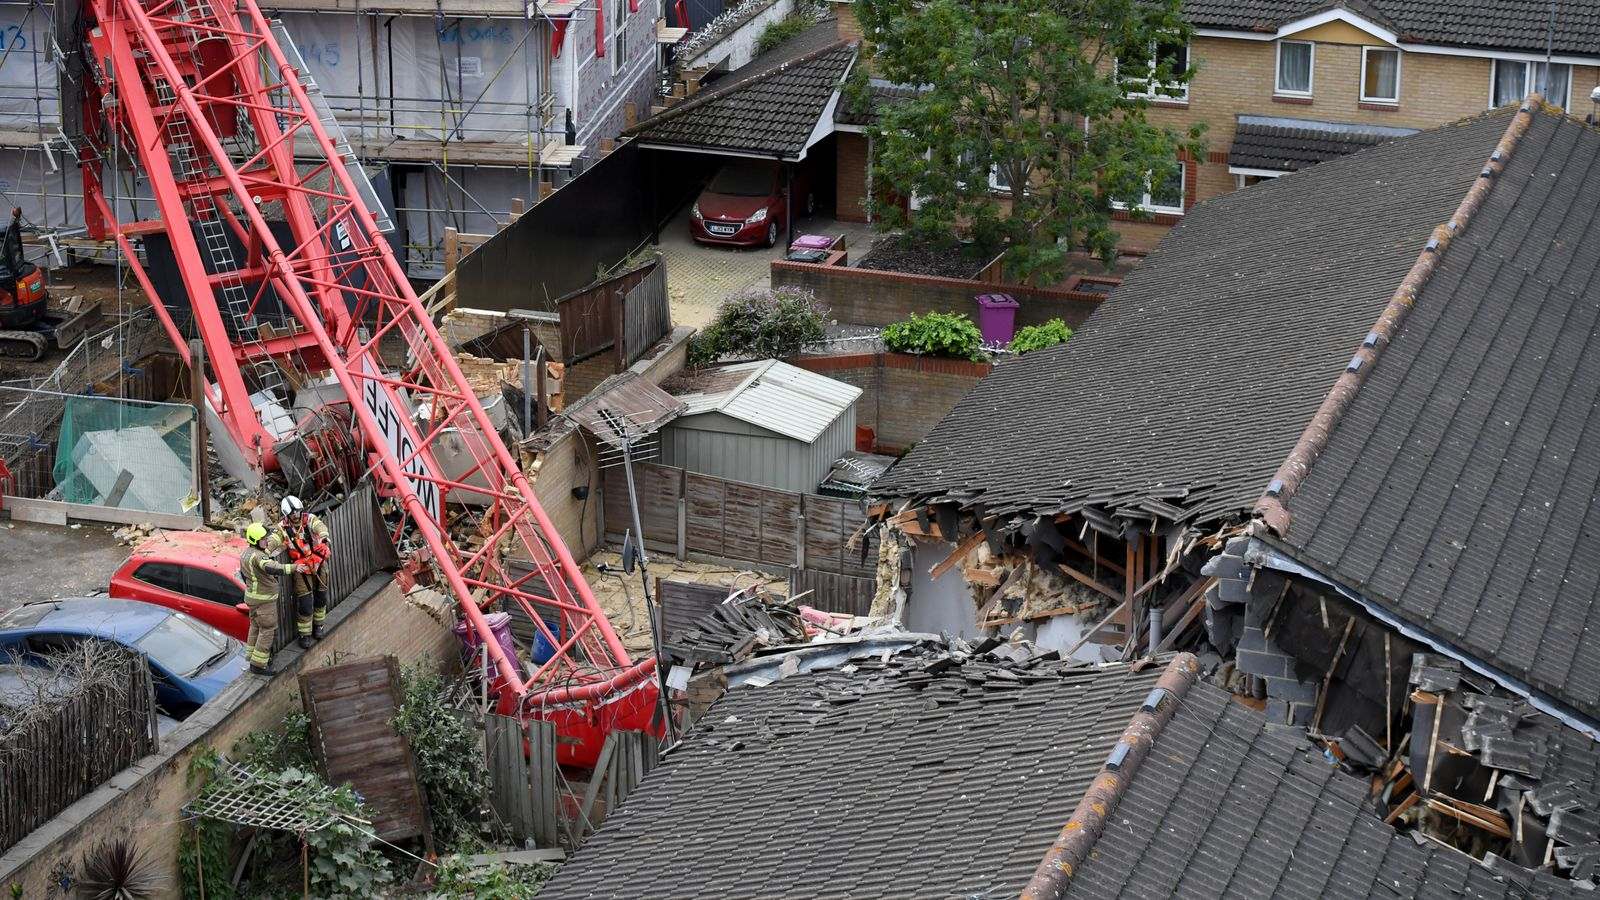 Bow crane collapse: Victim named as 85-year-old June Harvey